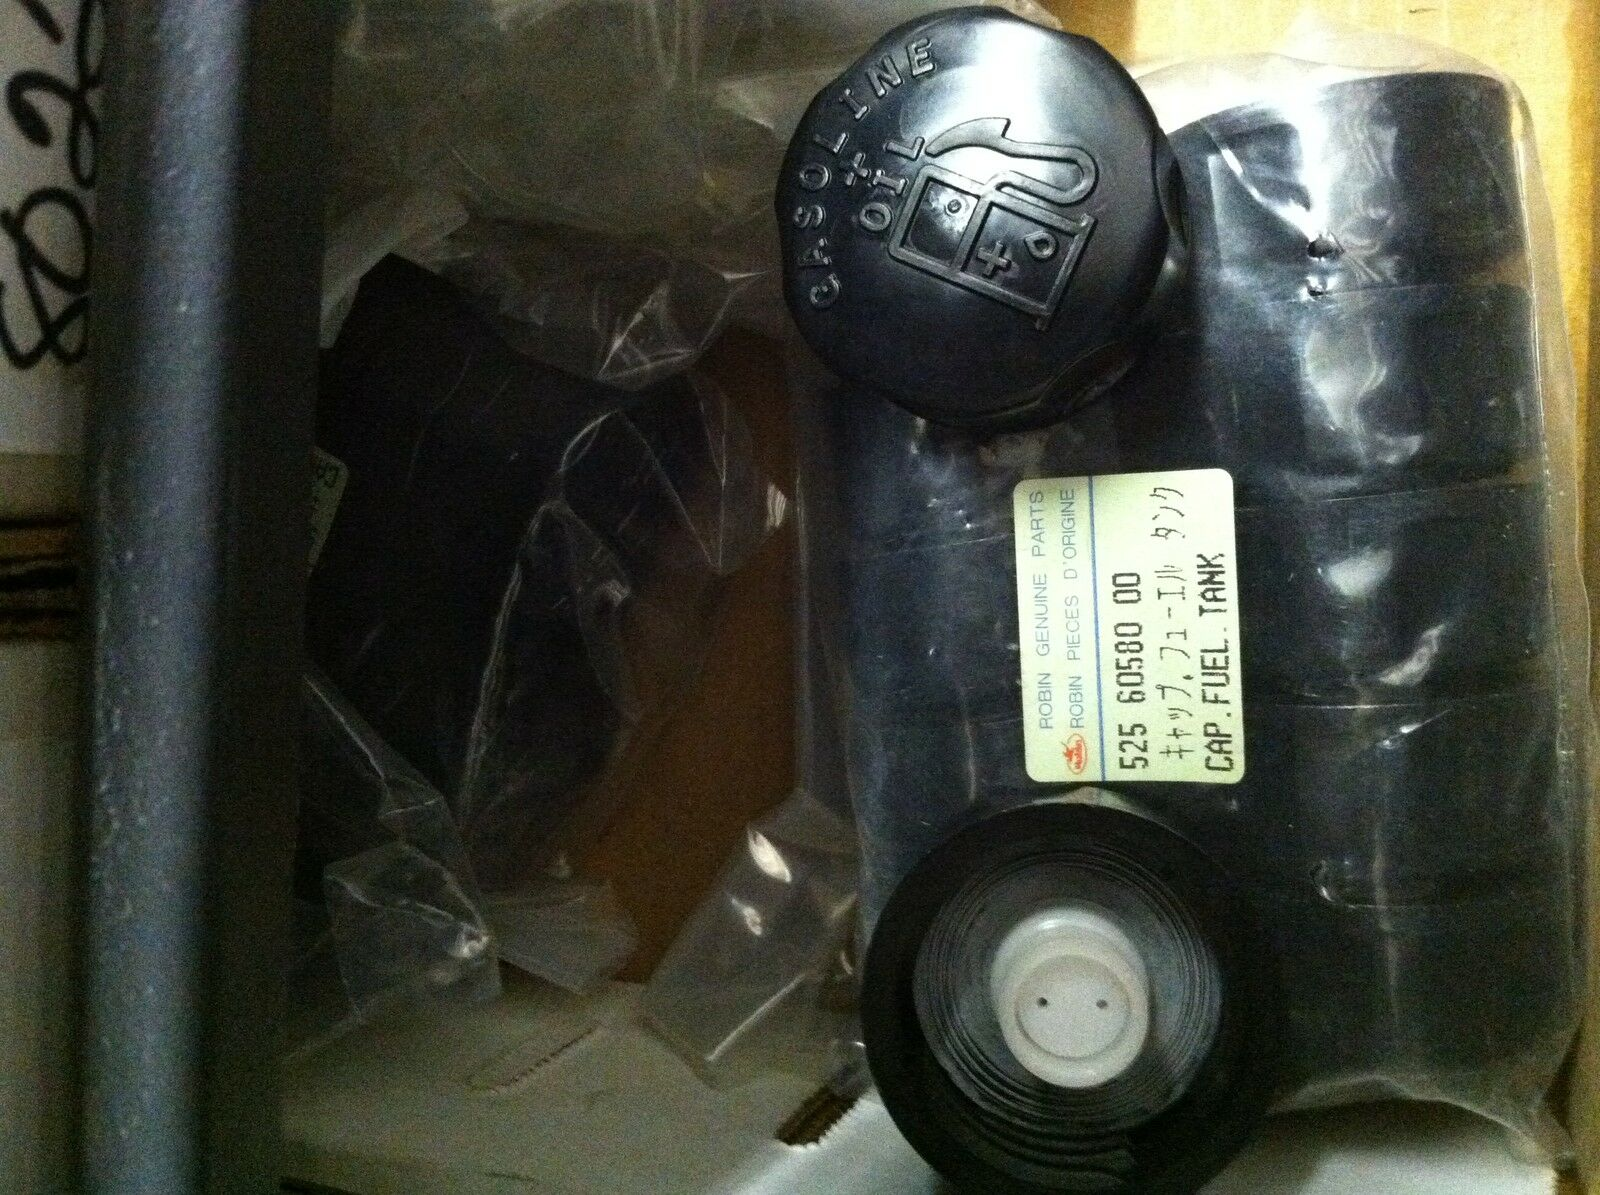 Robin Trimmer / Blower Fuel Cap 9990 14681 9000 Fits Many